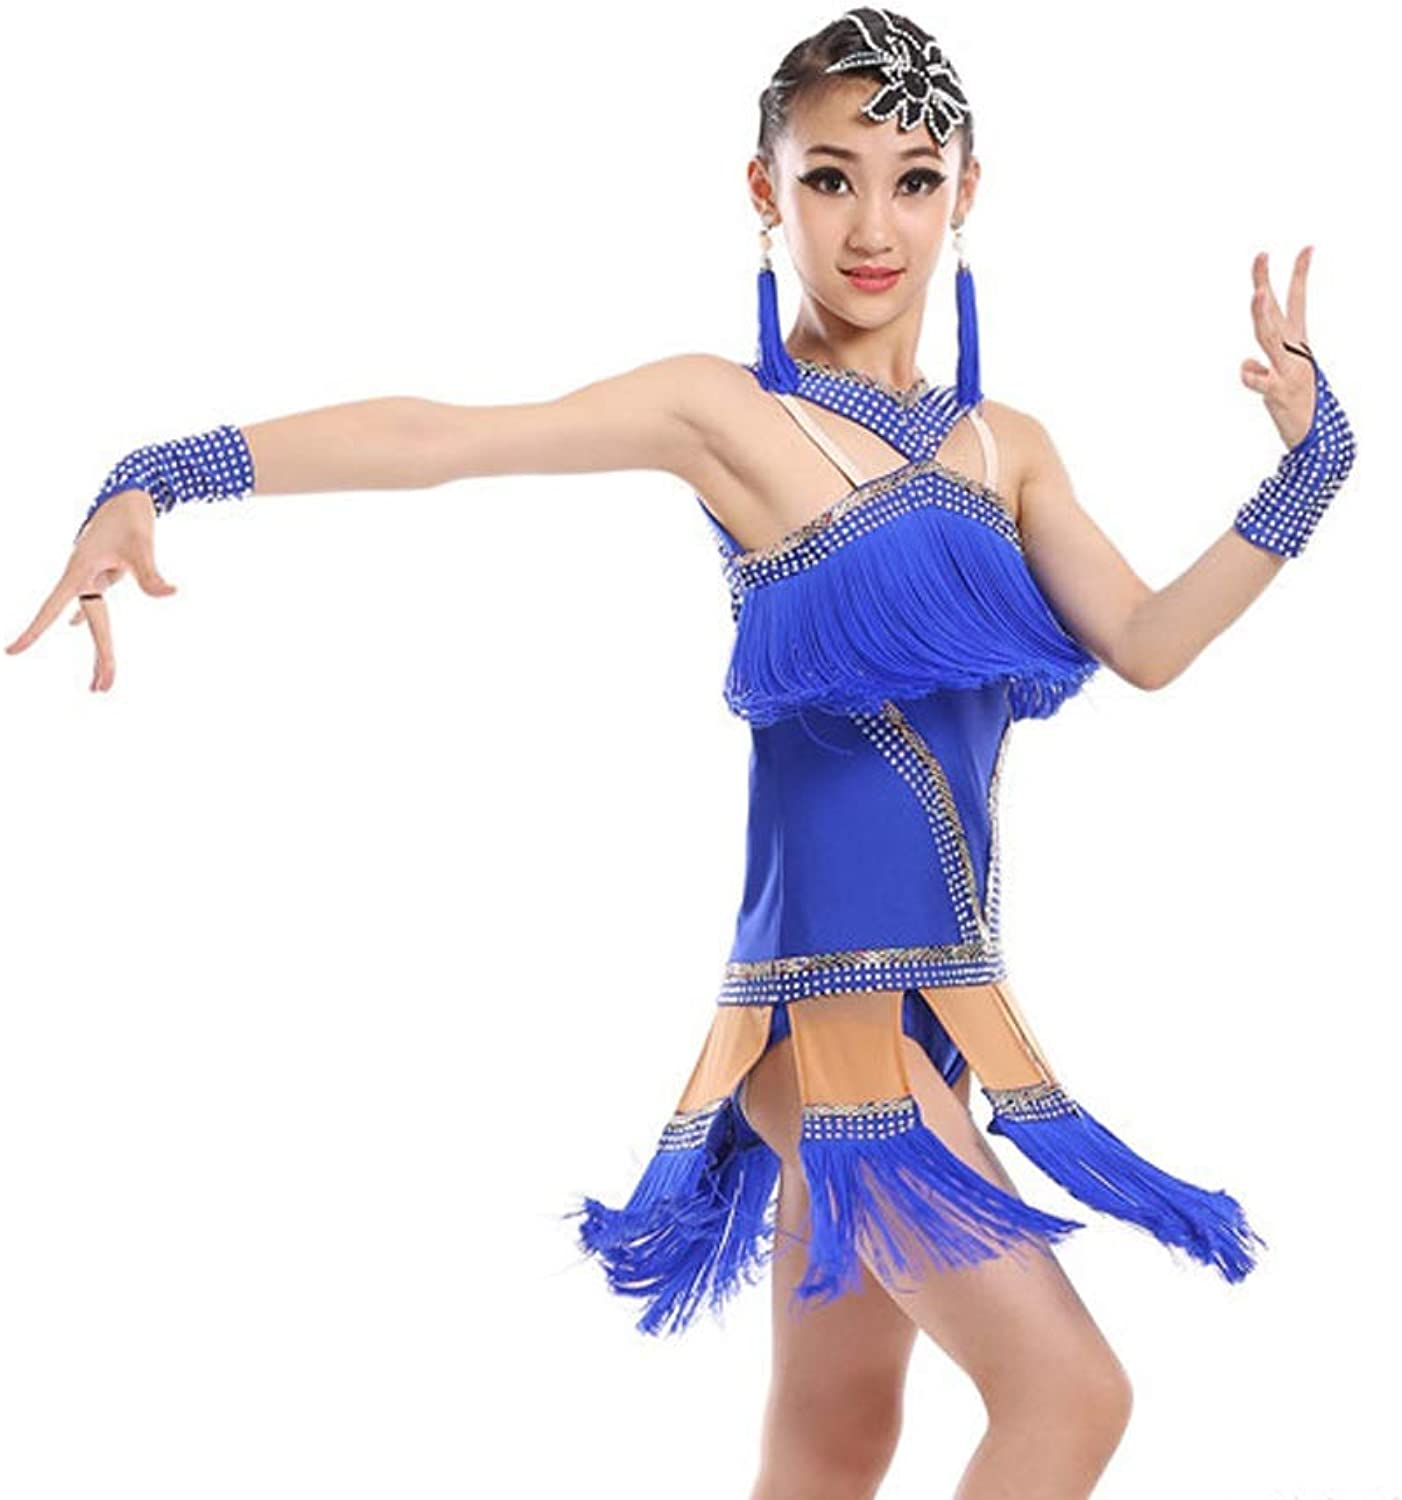 YONGMEI Fringed Latin Dance Competition Dress Performance Practice Clothing Dance costume